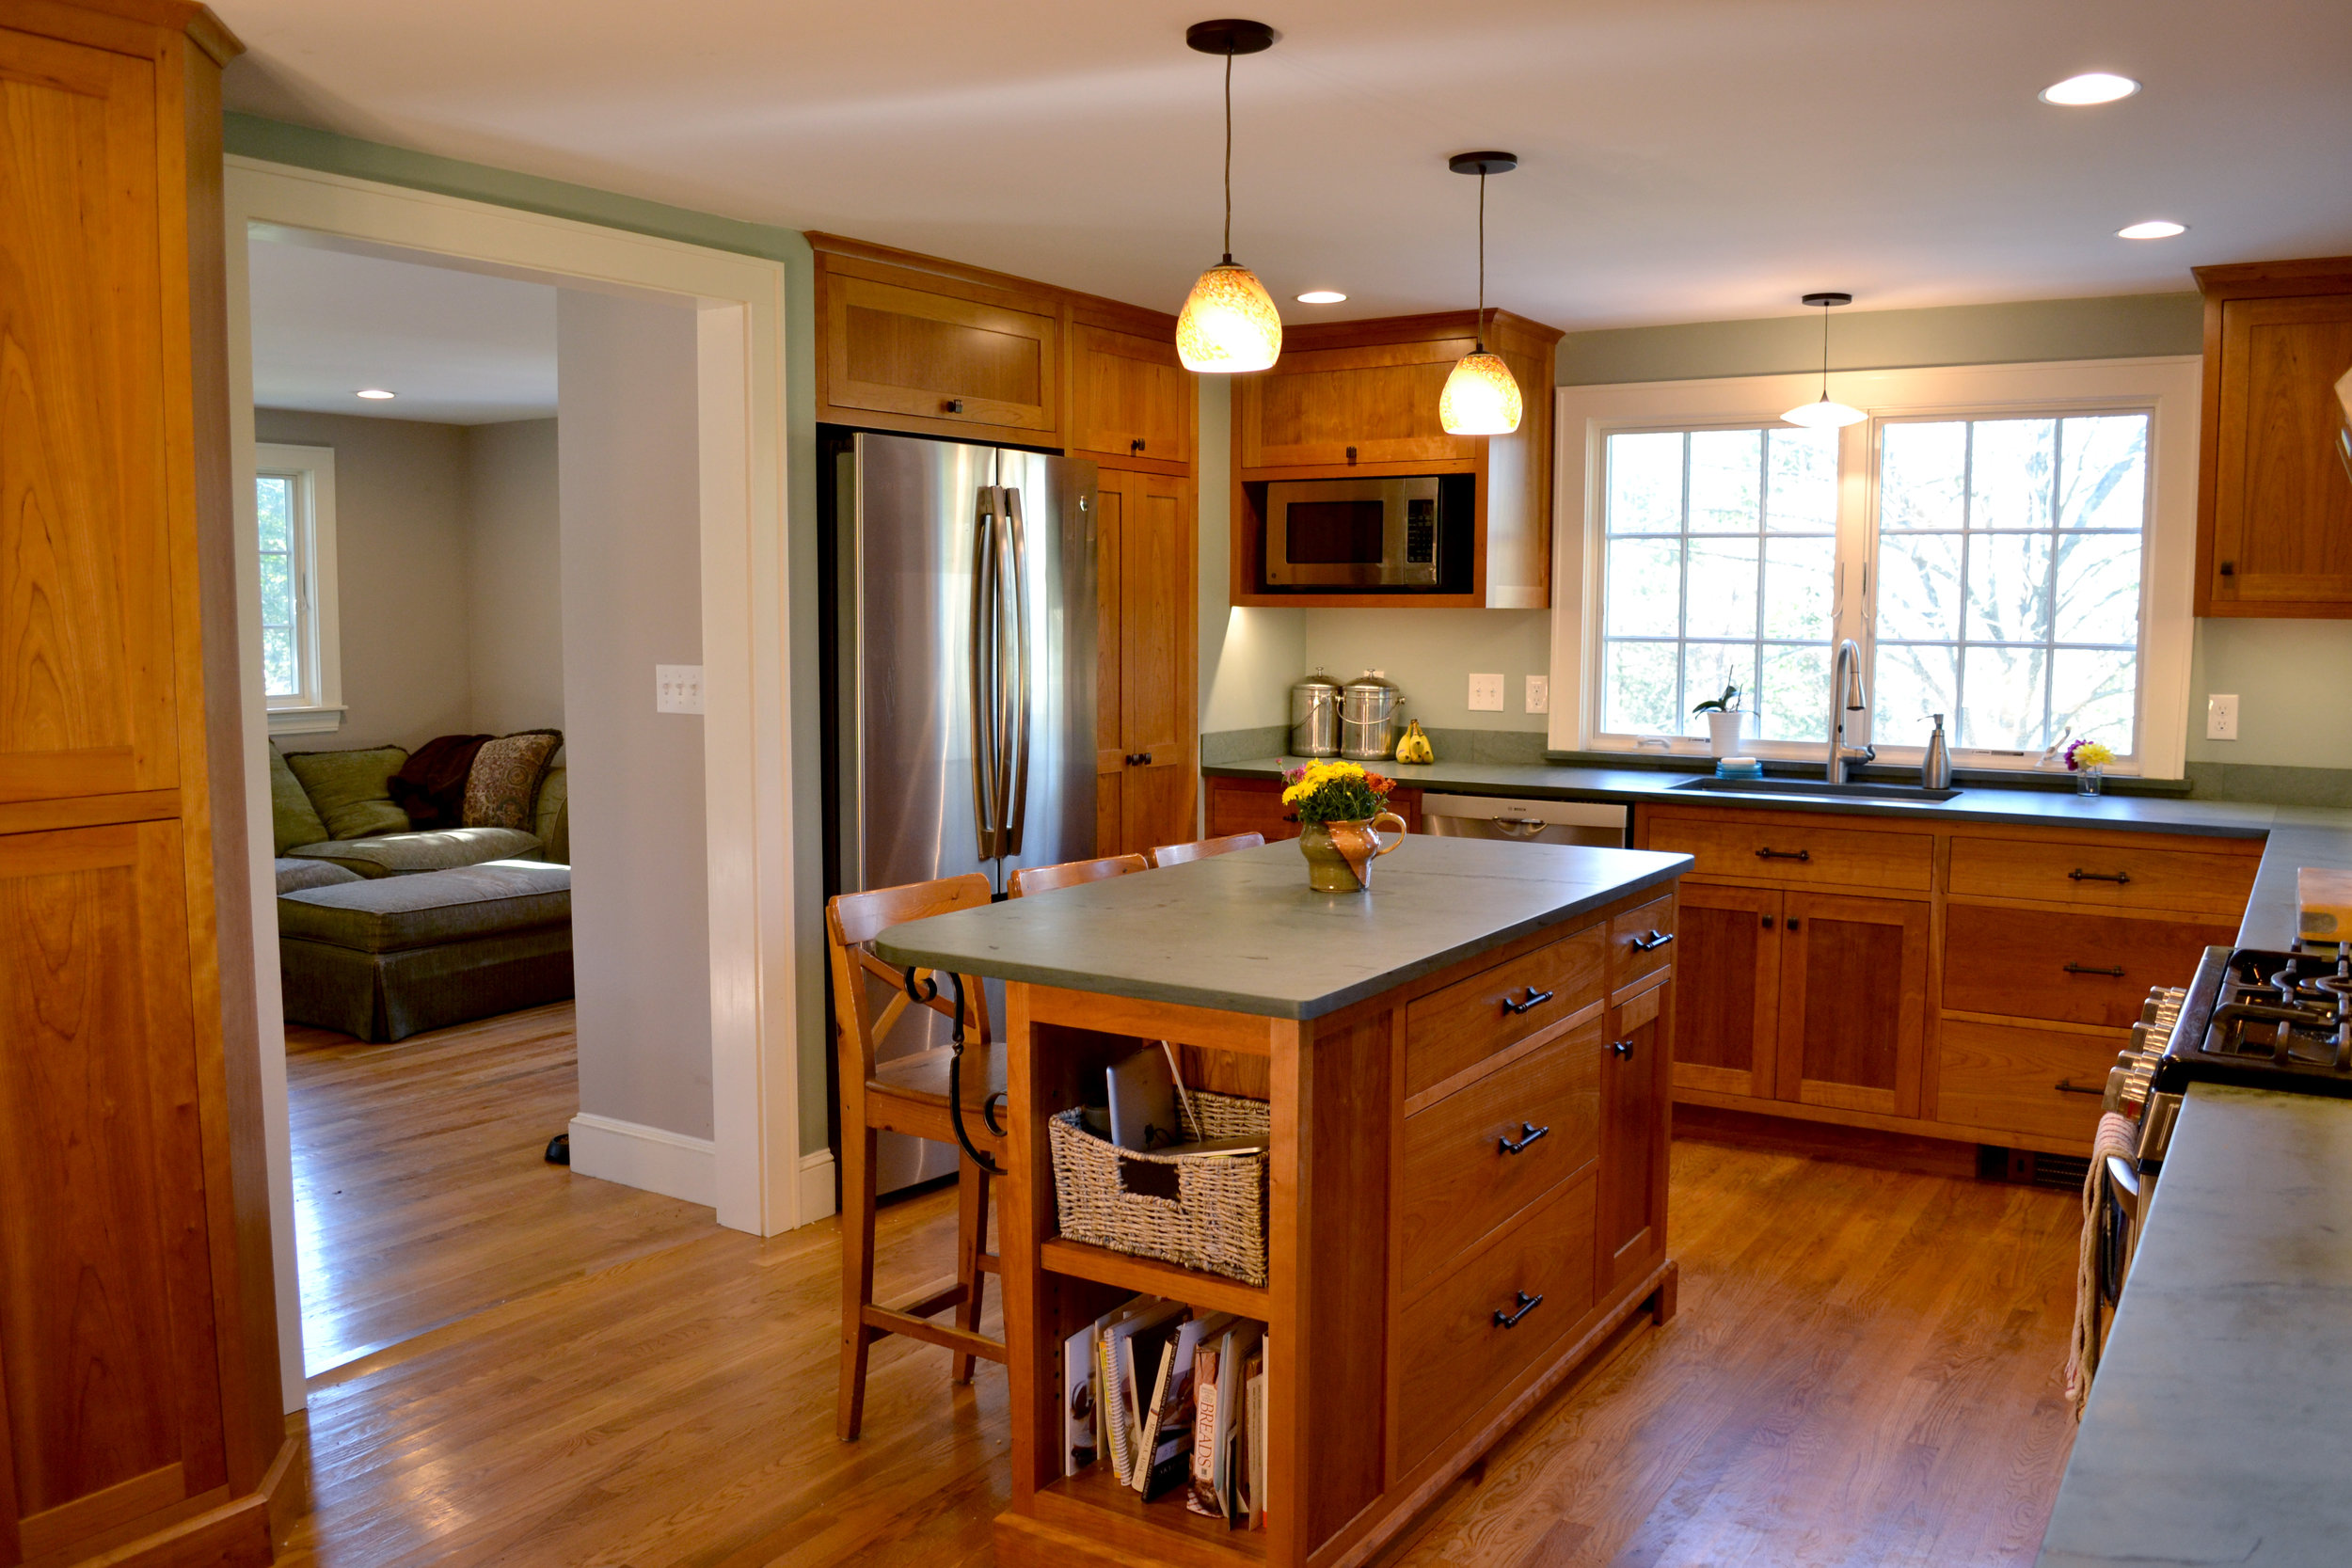 Converted to Kitchen | Cherry Cabinets | Island Counter | Dickinson Architects